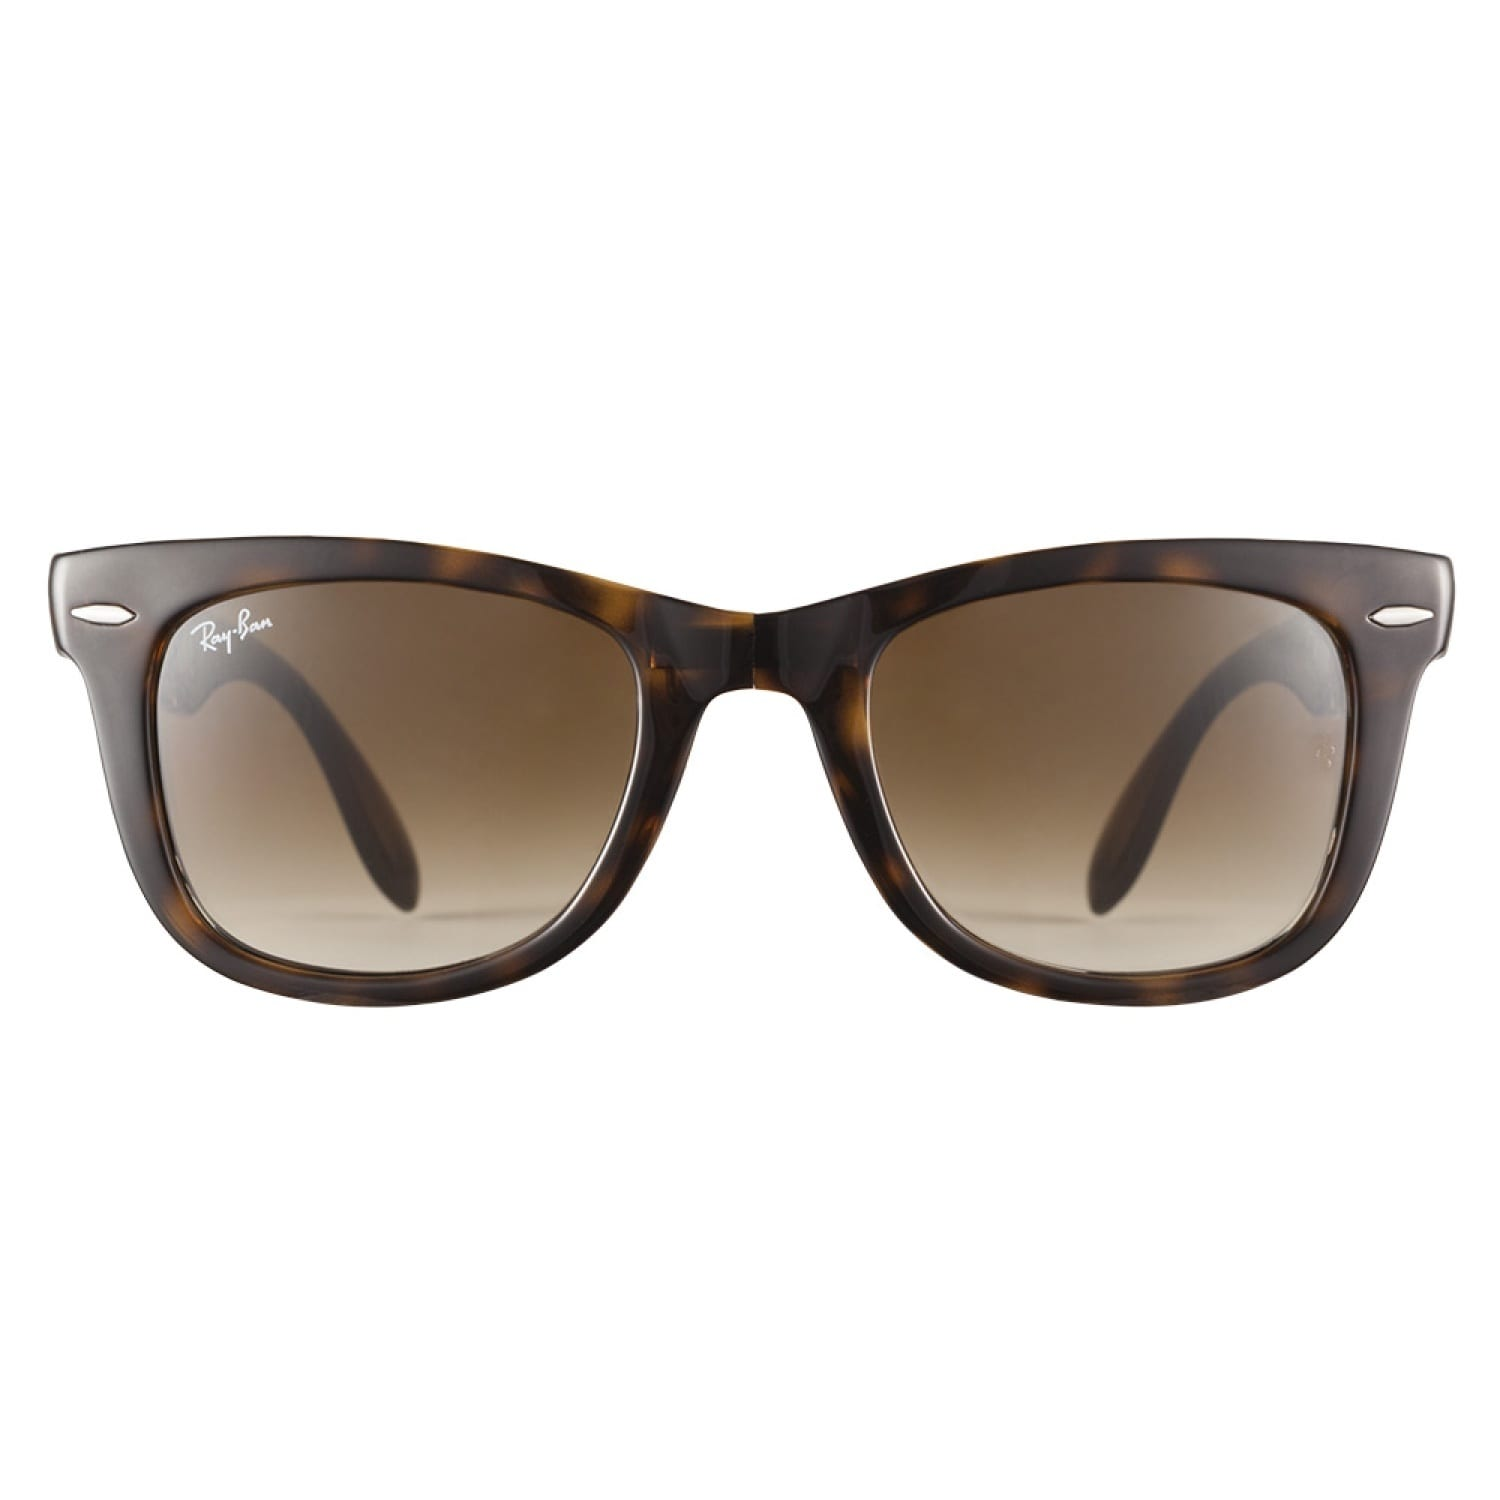 63f51803dd7 Shop Ray-Ban RB4105 710 51 Folding Wayfarer Tortoise 50 Sunglasses - Free  Shipping Today - Overstock.com - 8962129